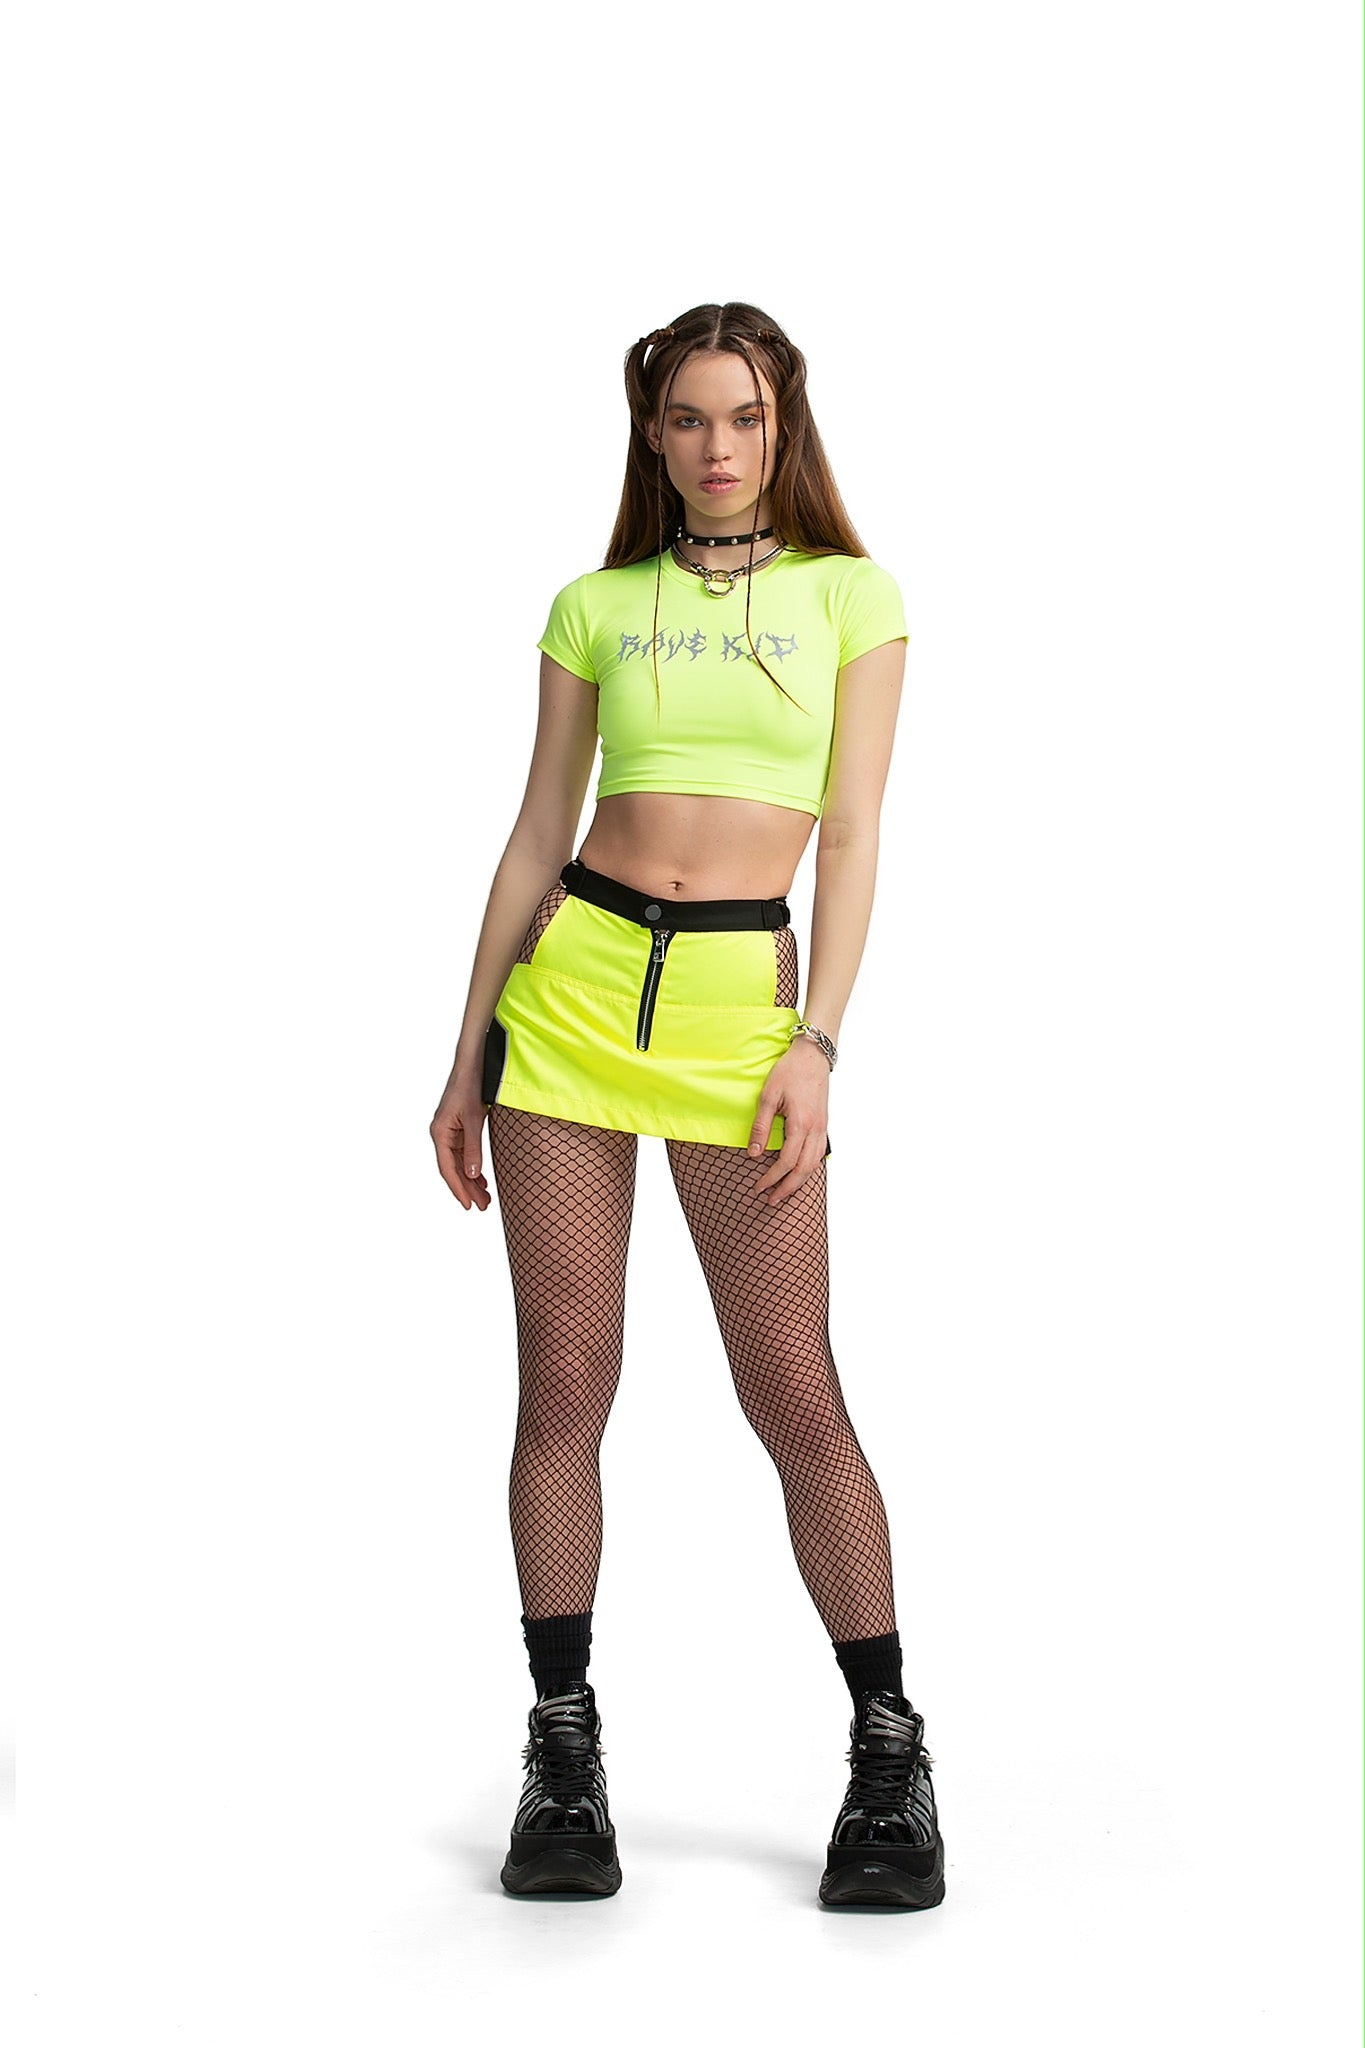 Rave Kid Slim top [neon yellow]